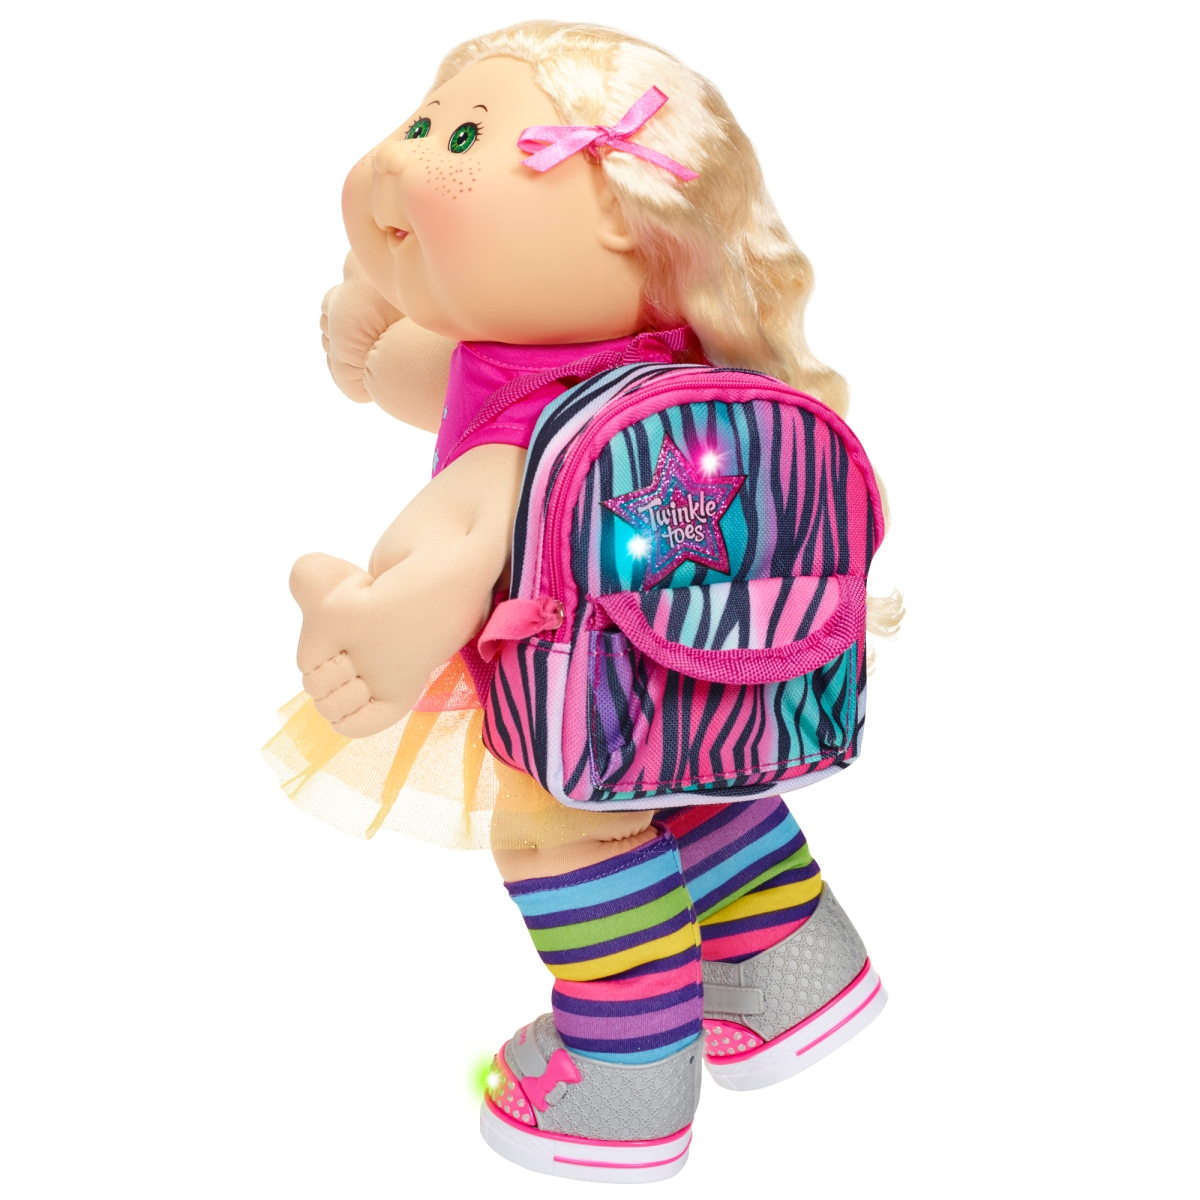 Cabbage Patch Kids Featuring Norma Jean - Find My Way To Your Heart